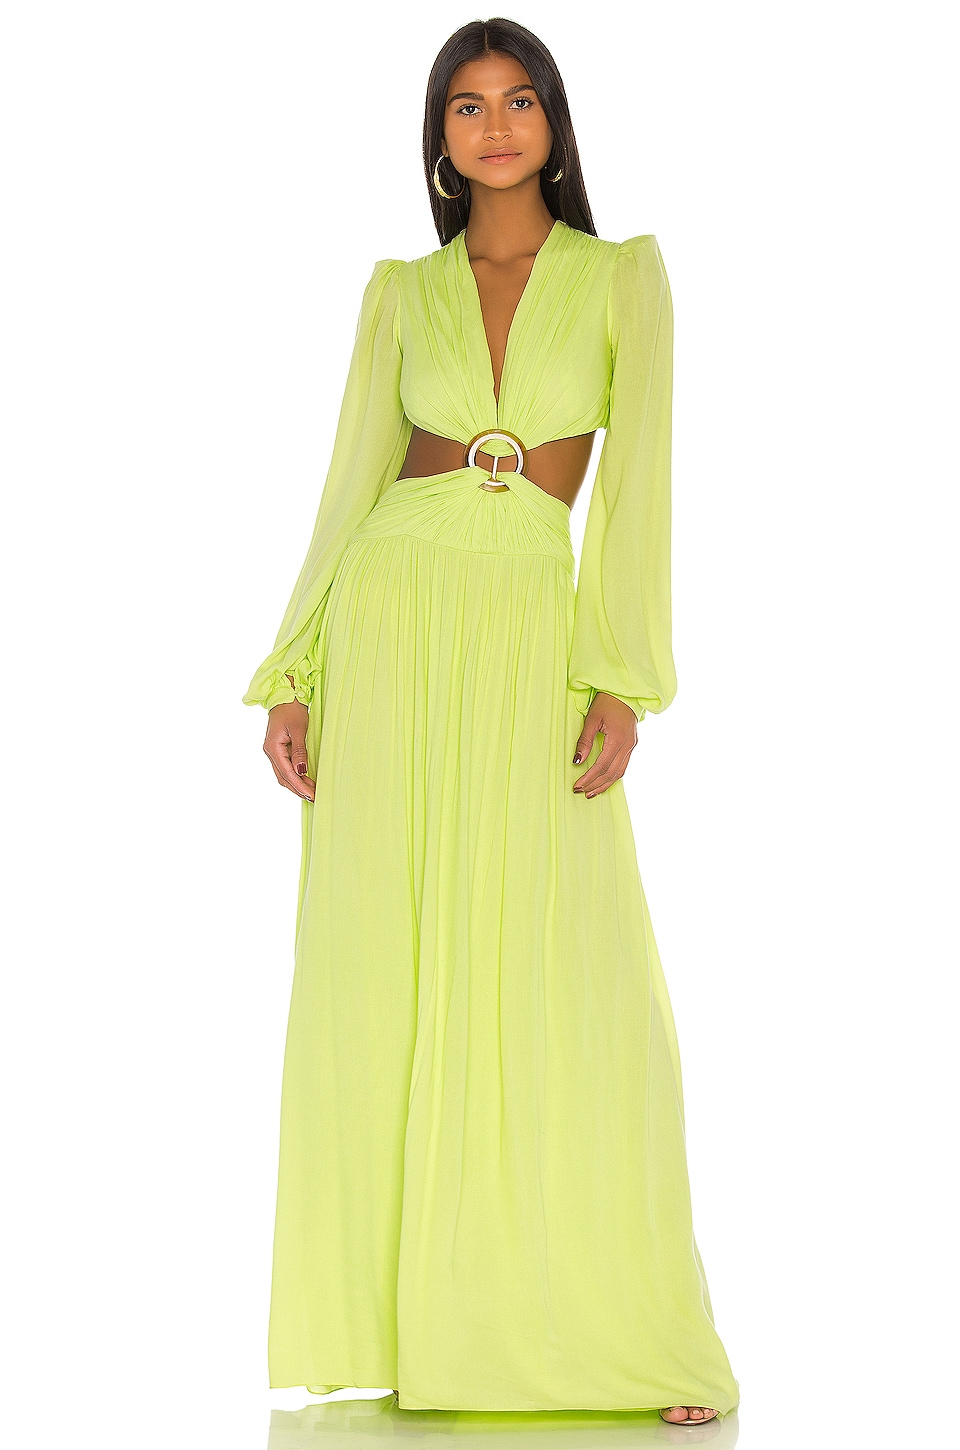 PatBO Neon Cutout Gown in Lime